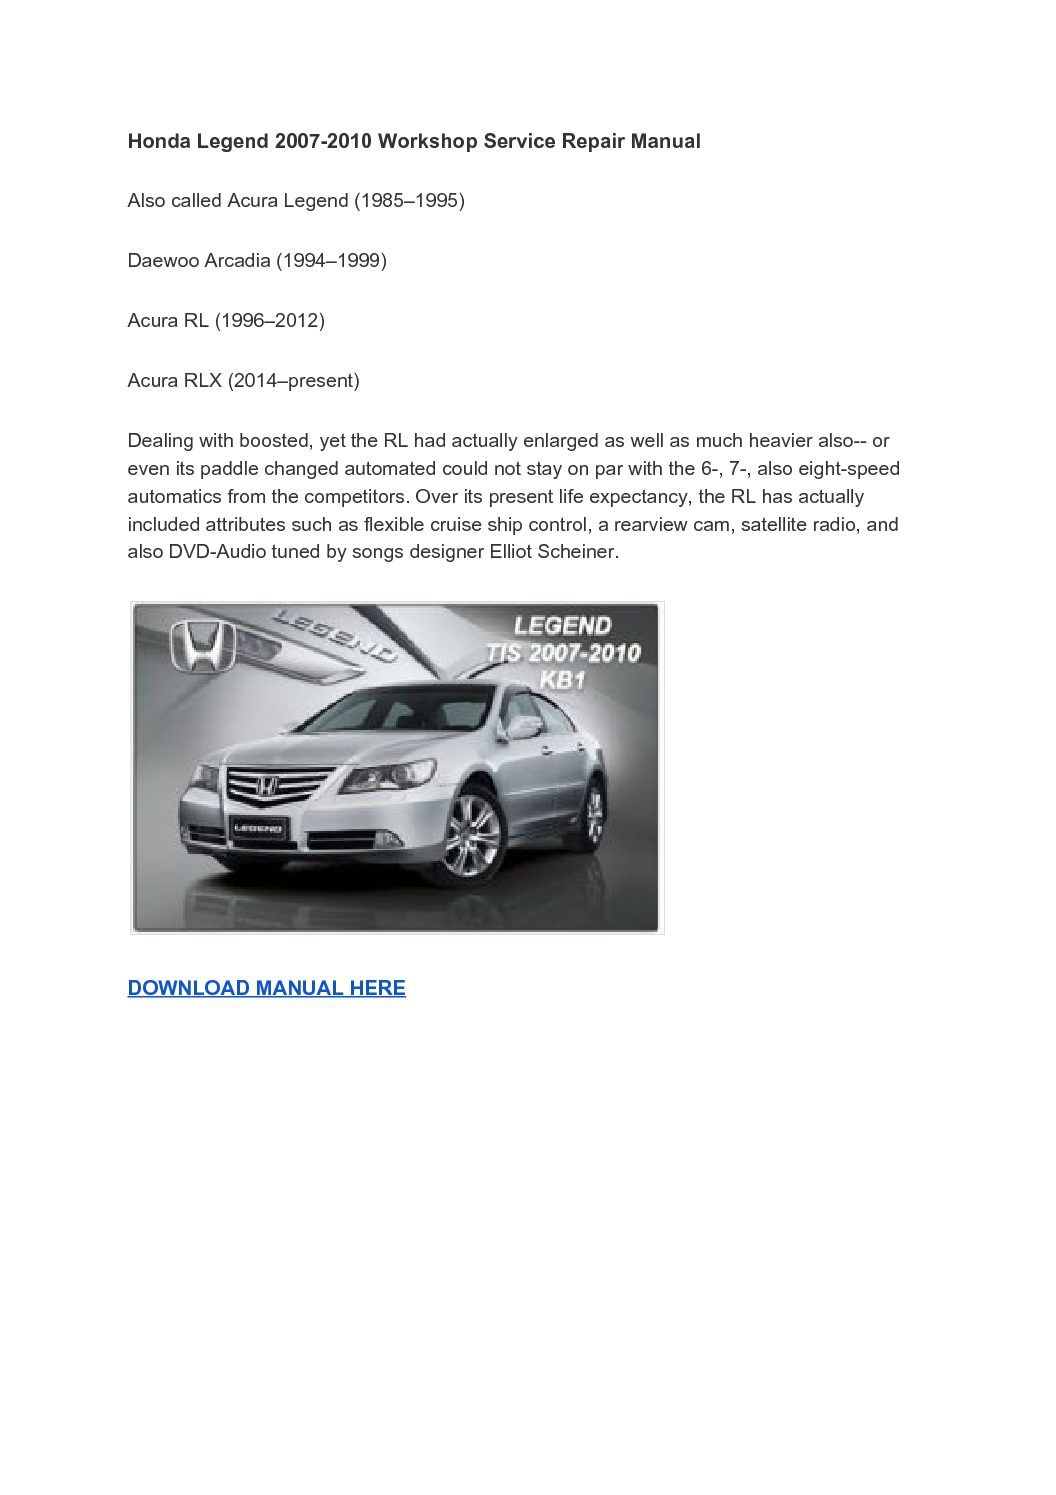 Auto mechanic, Honda Legend Insight 2007-2010 Workshop Service Repair Manual,The  Honda